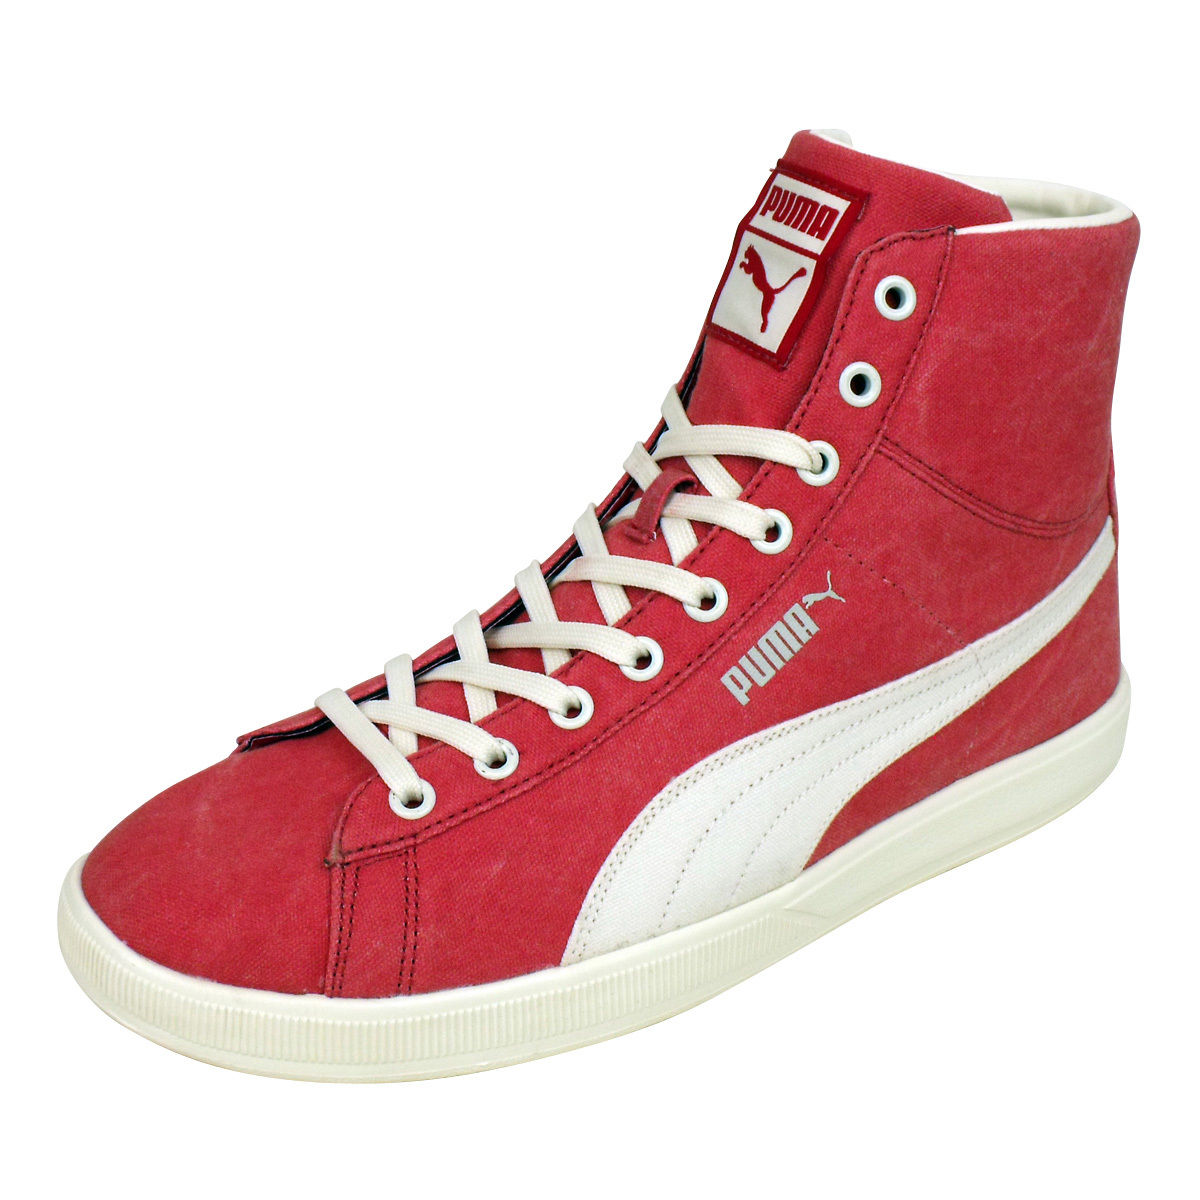 mens puma archive mid lite cvs hi top tops boot trainers